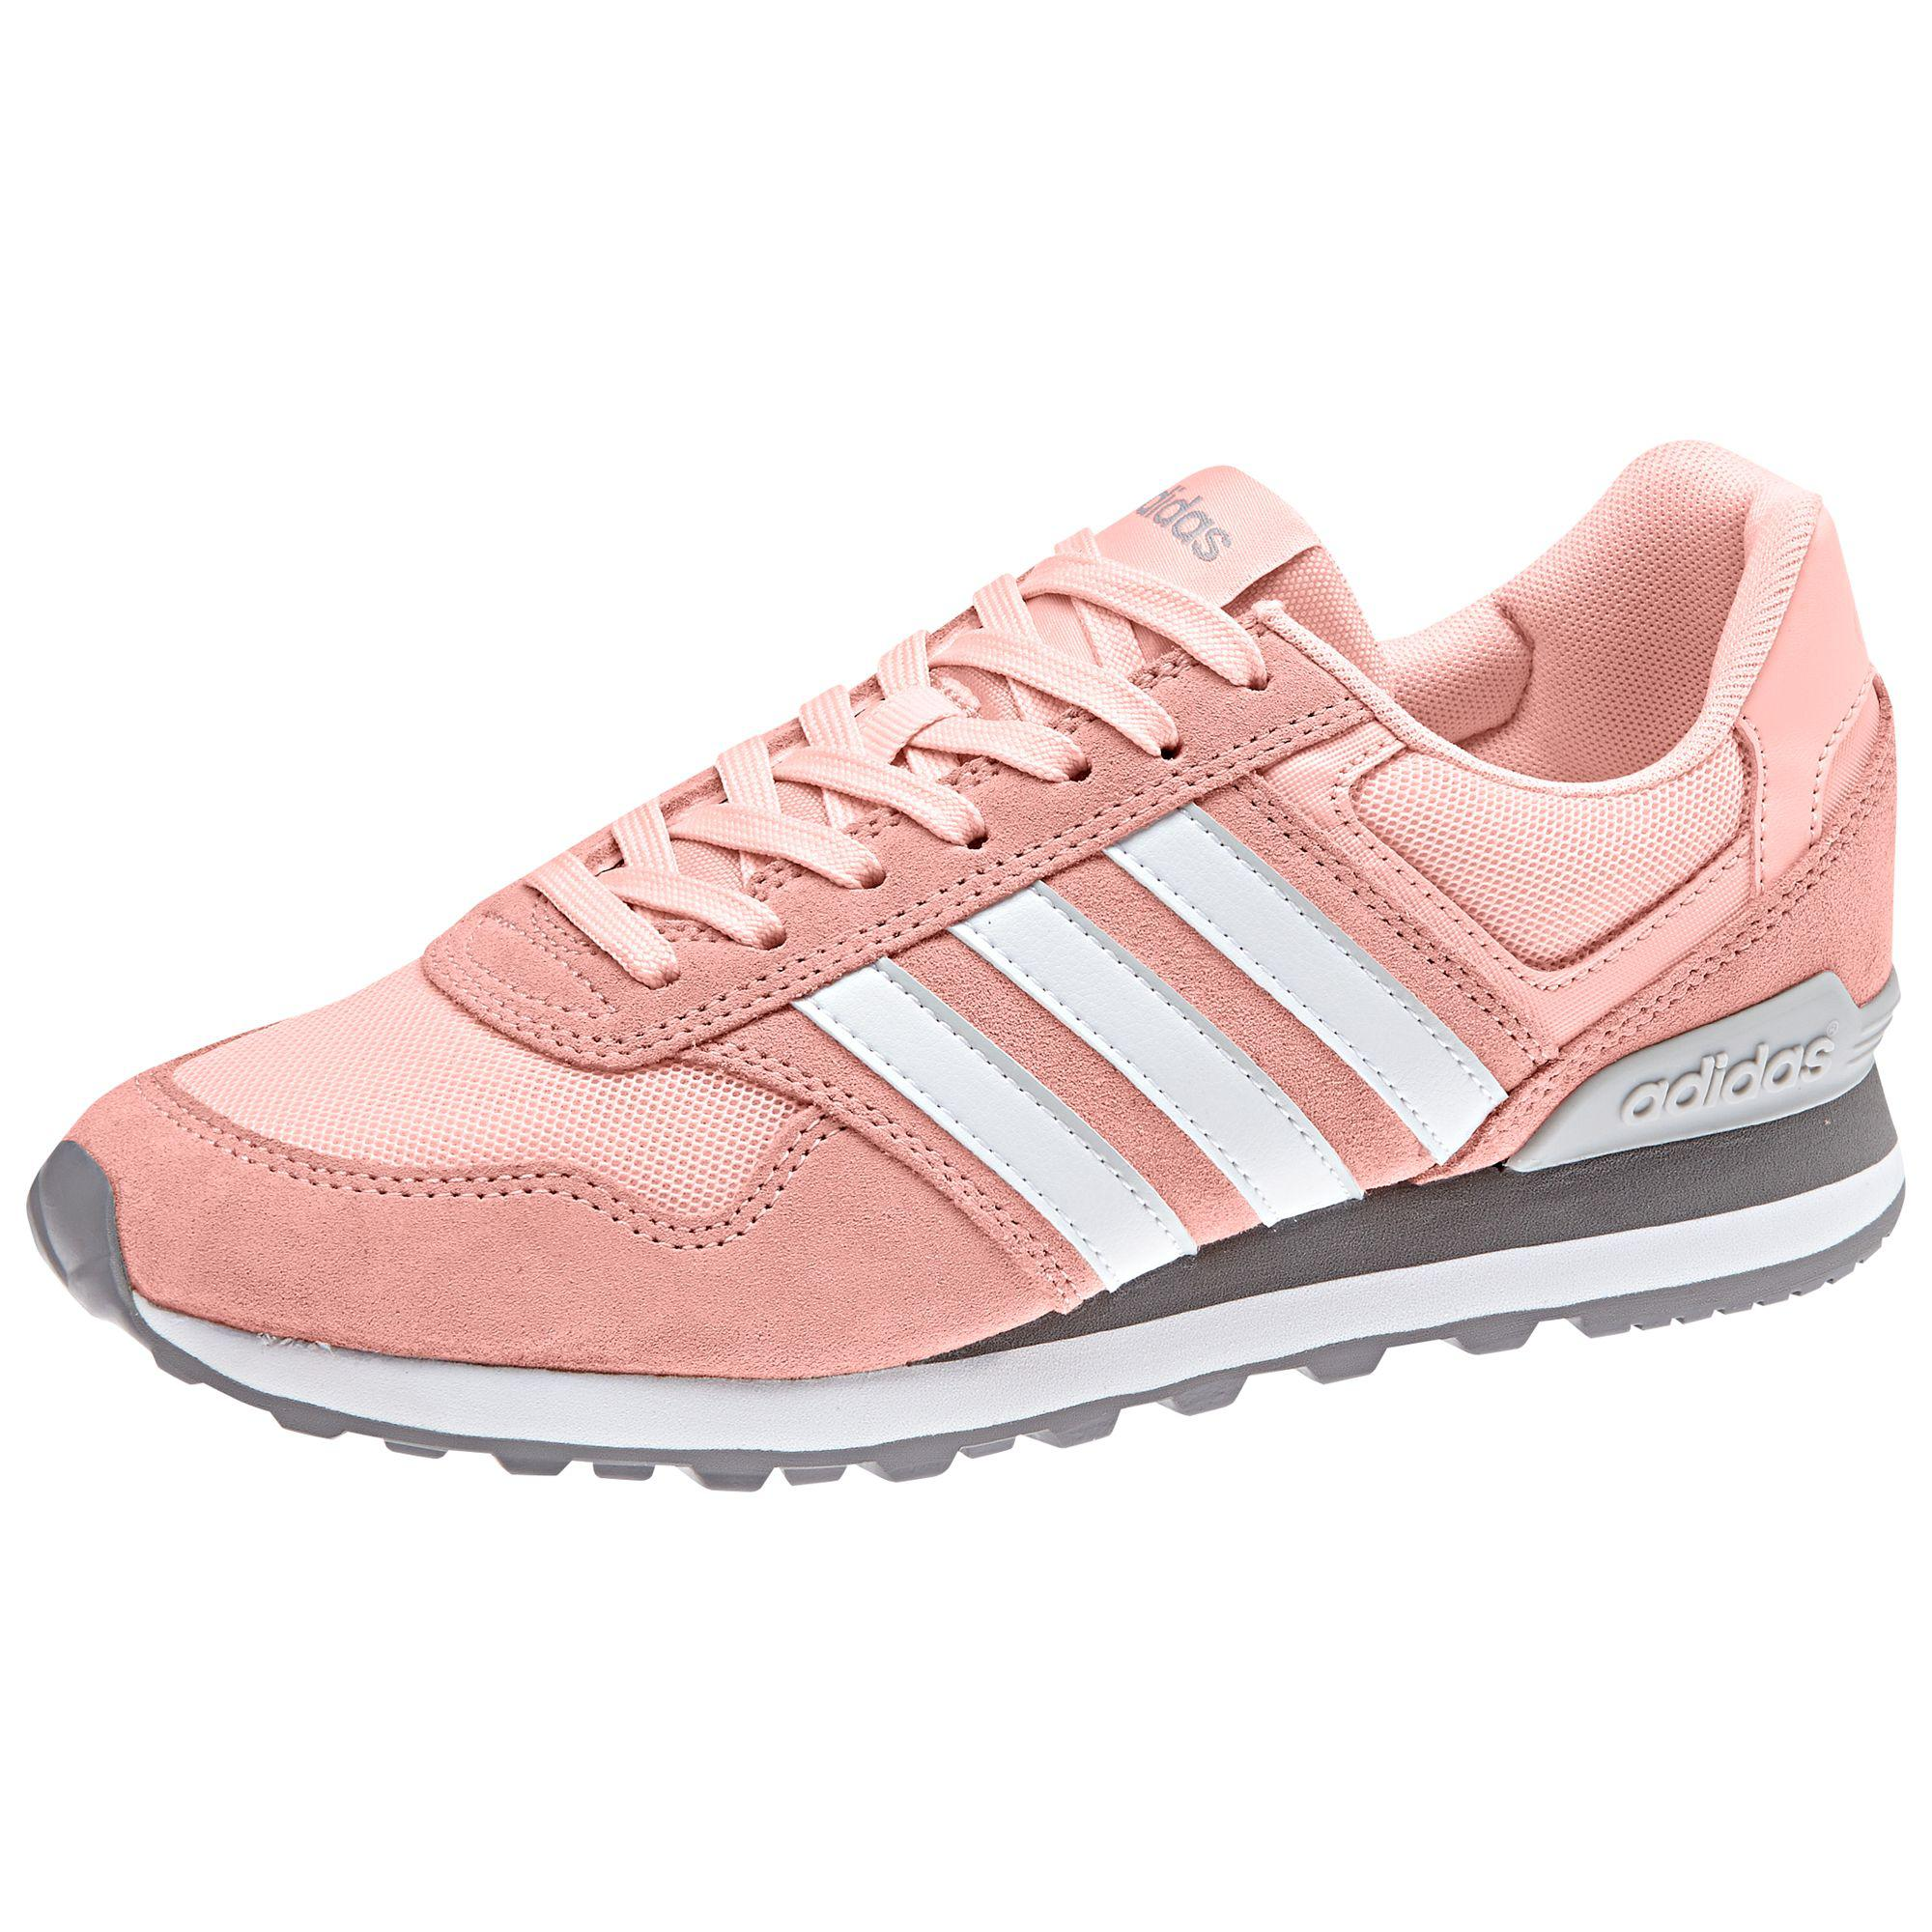 adidas Synthetic Neo 10k Casual Women's Trainers in Pink